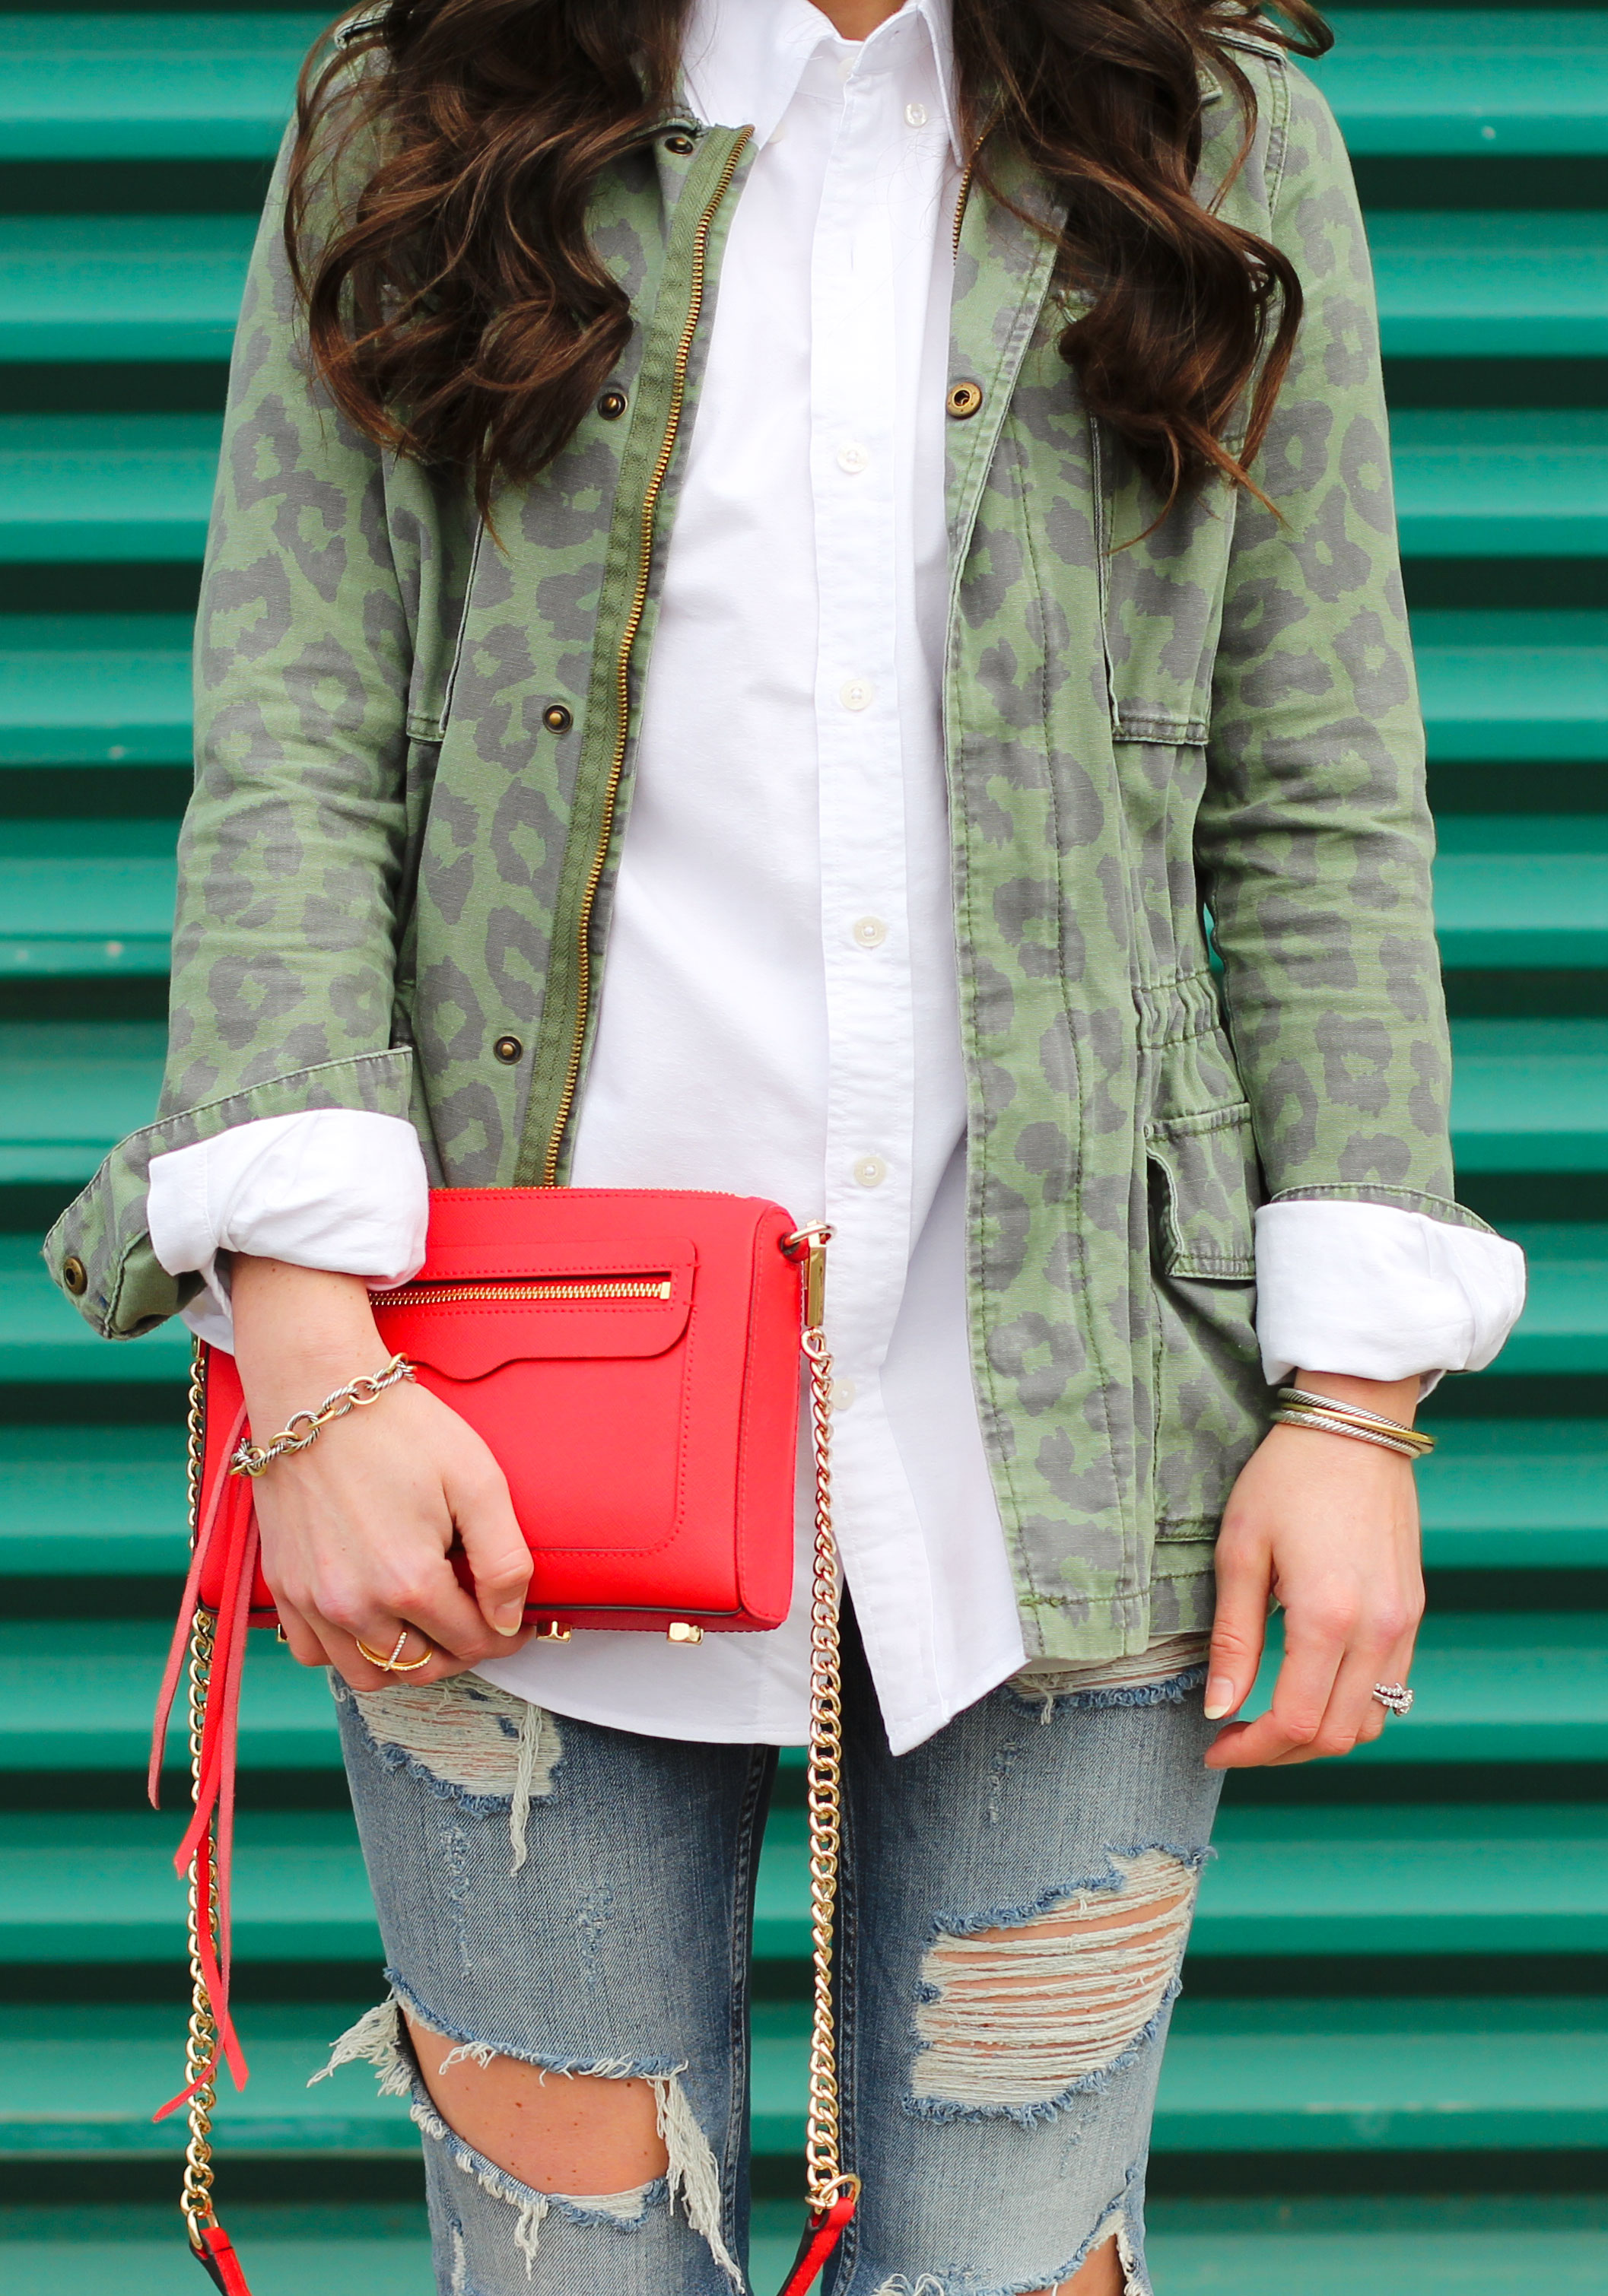 How To Wear Your Boyfriend's White Shirt, Destroyed Jeans, Red Pumps, Rebecca Minkoff Red Avery Crossbody Bag, Dior Replica Sunglasses, Weekend Style, Boyfriend Shirt Outfit